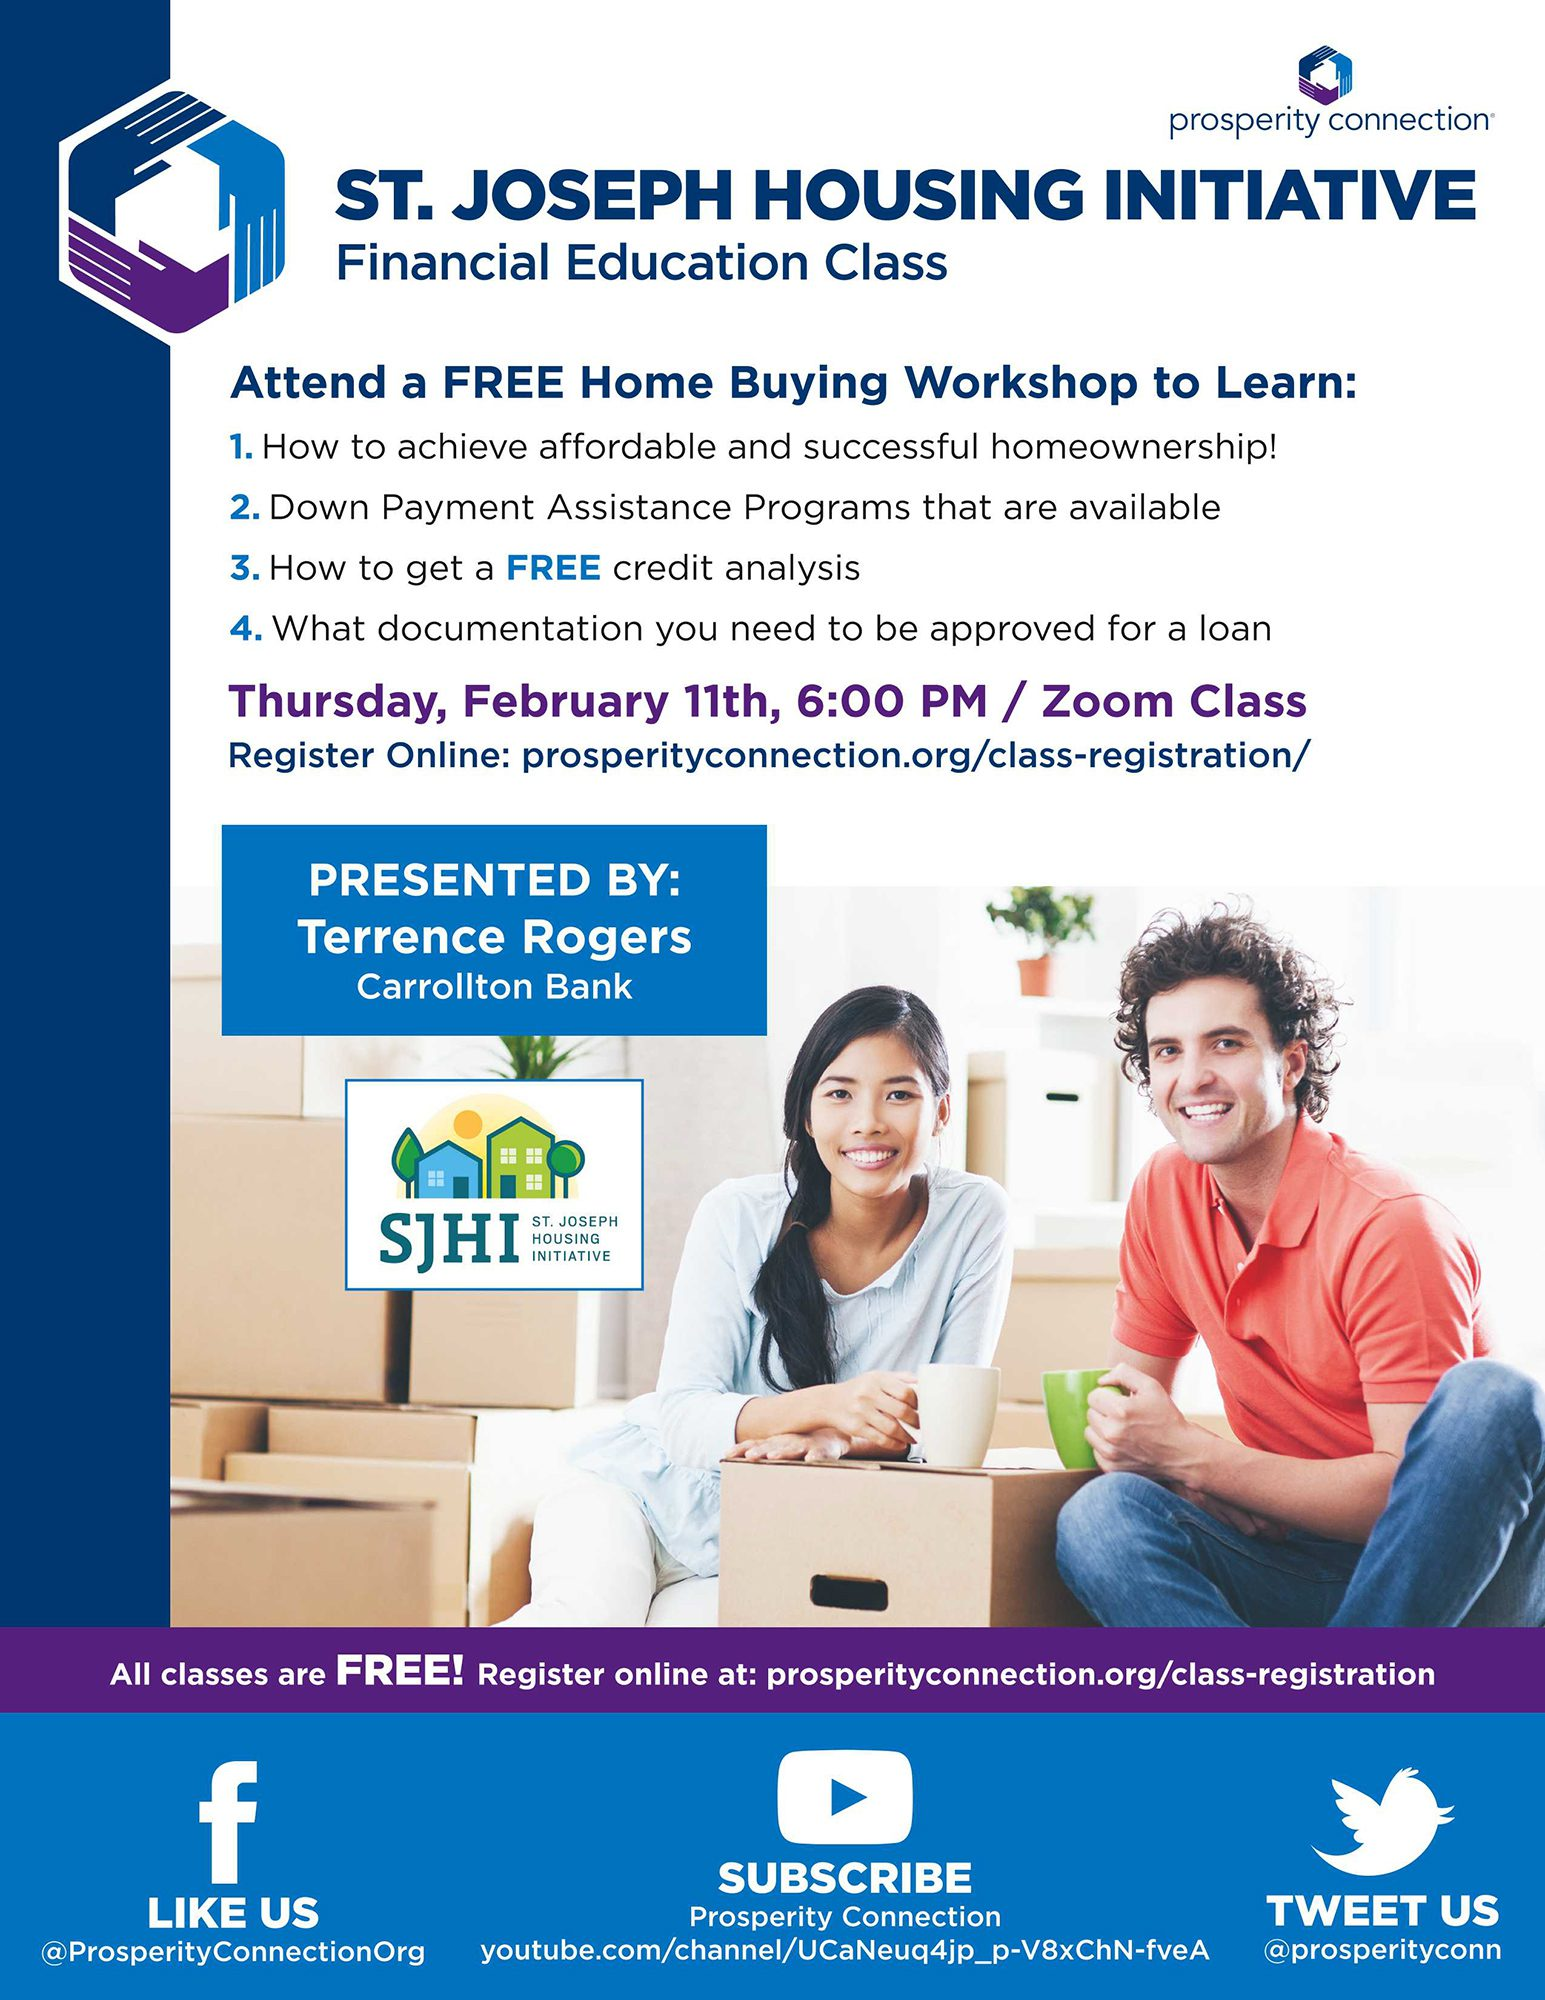 Flyer for St. Joseph's Housing Initiative Homebuyer Education class on February 11th, 2021.